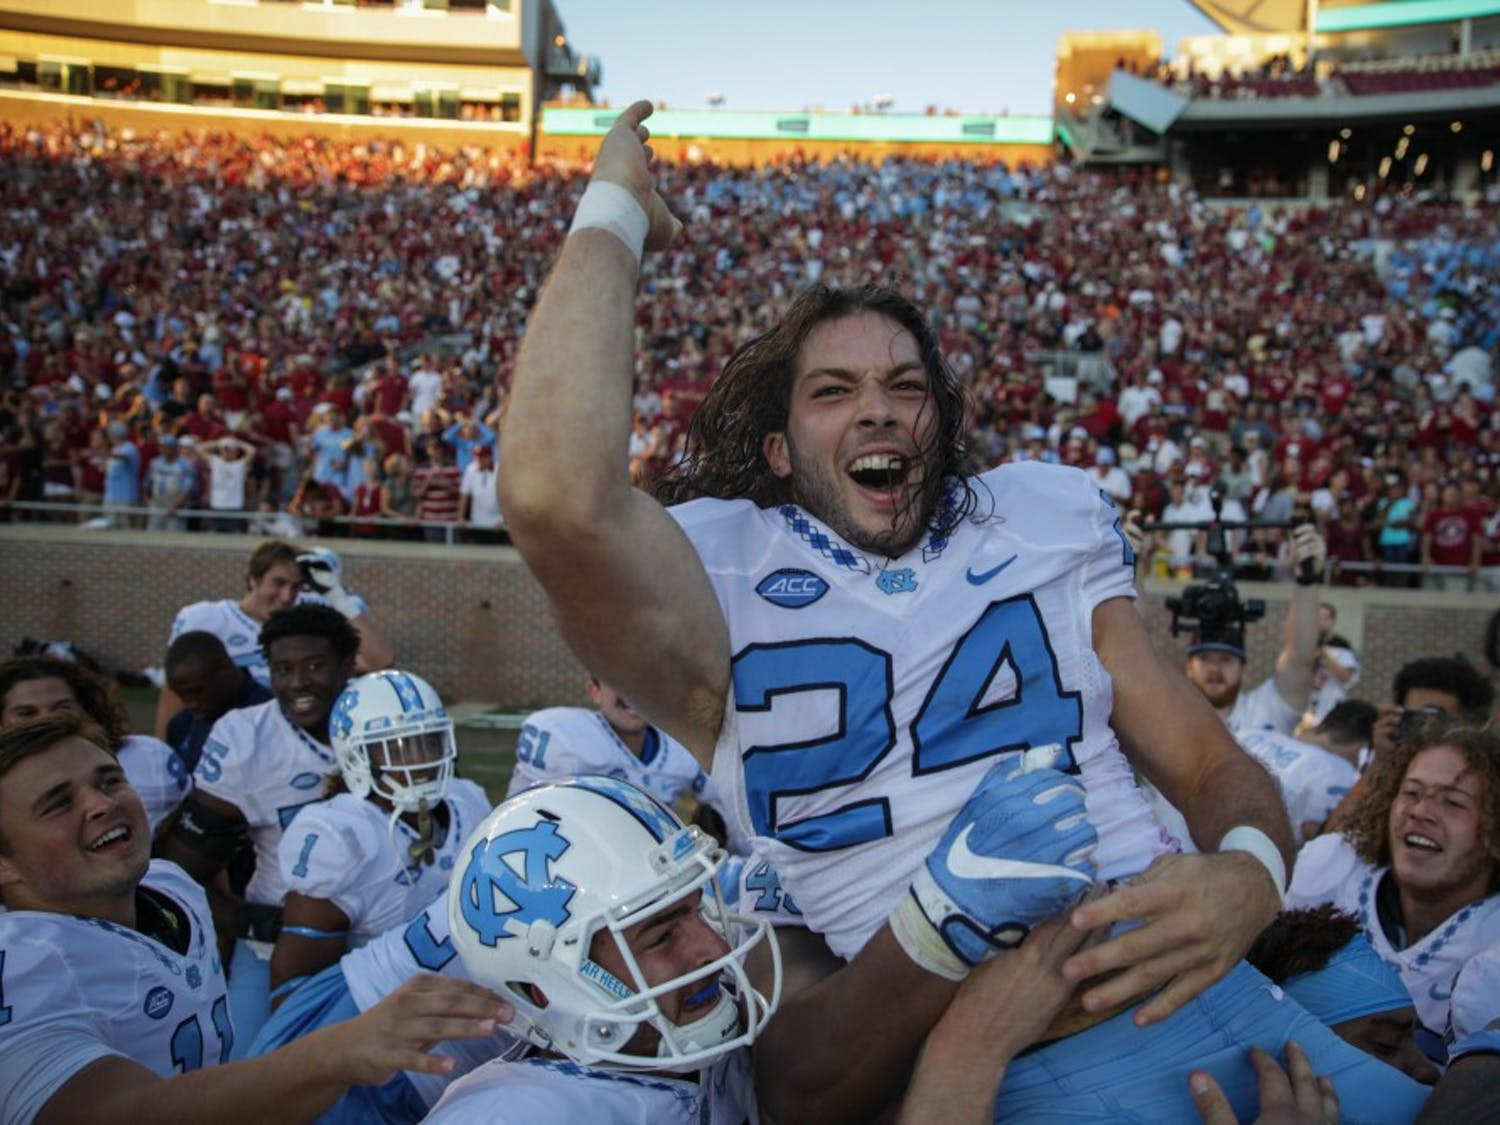 Nick Weiler (24) is hoisted by his teamates after he scored a 54-yard field goal to win the game against FSU.